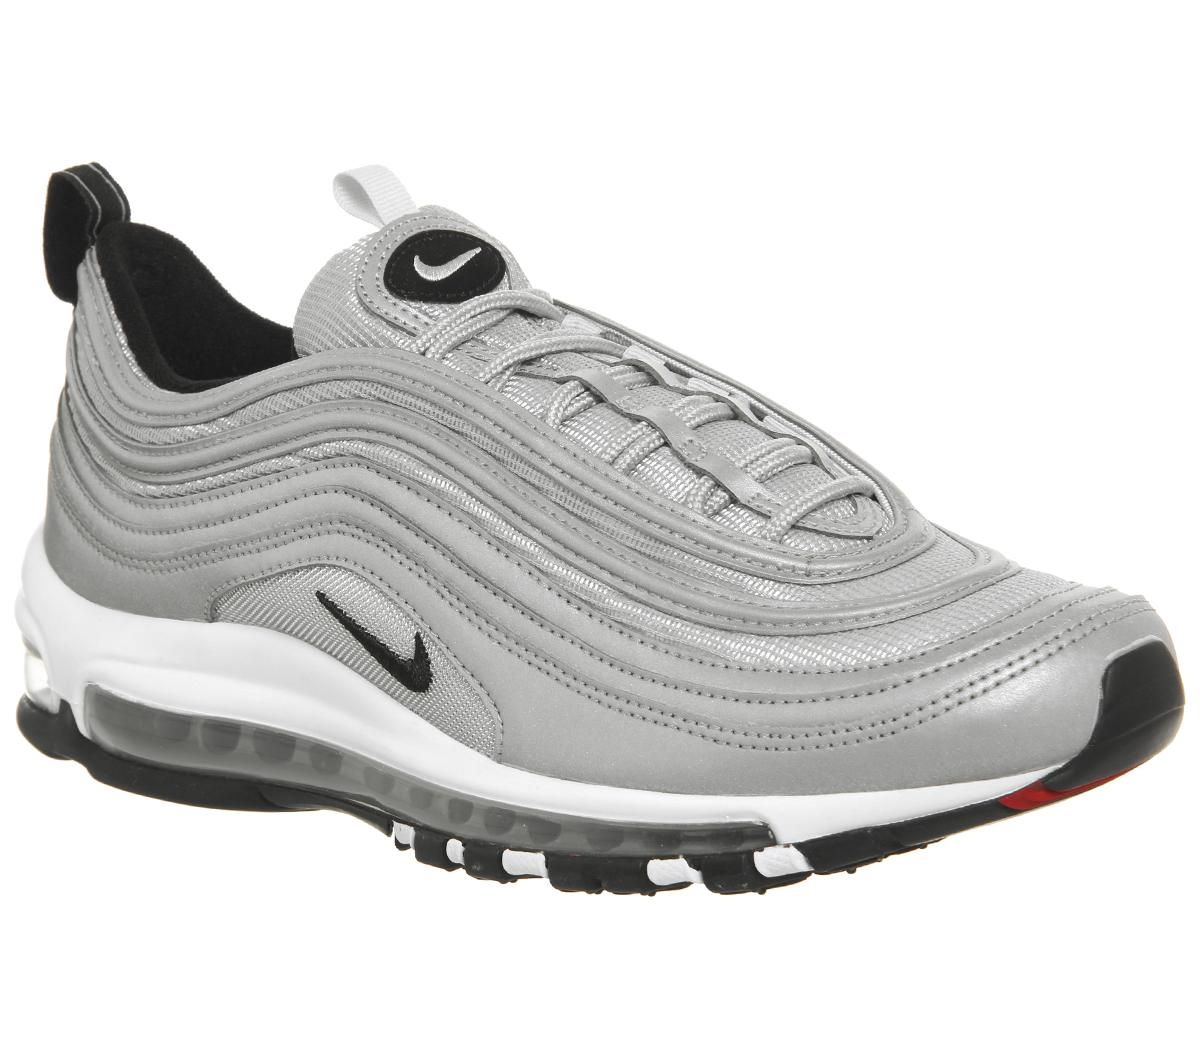 Nike Air Max 97 Trainers Reflective